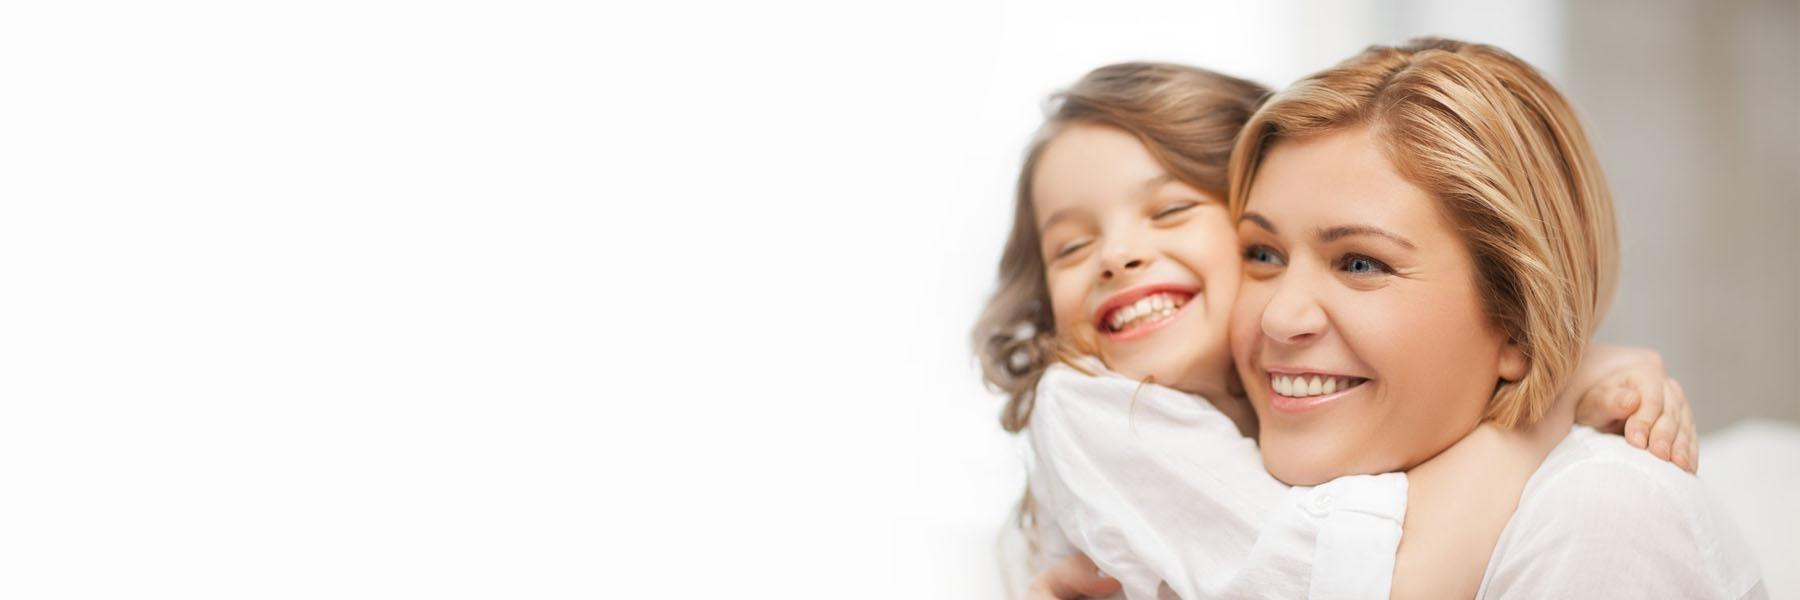 Pediatrics | Dentist